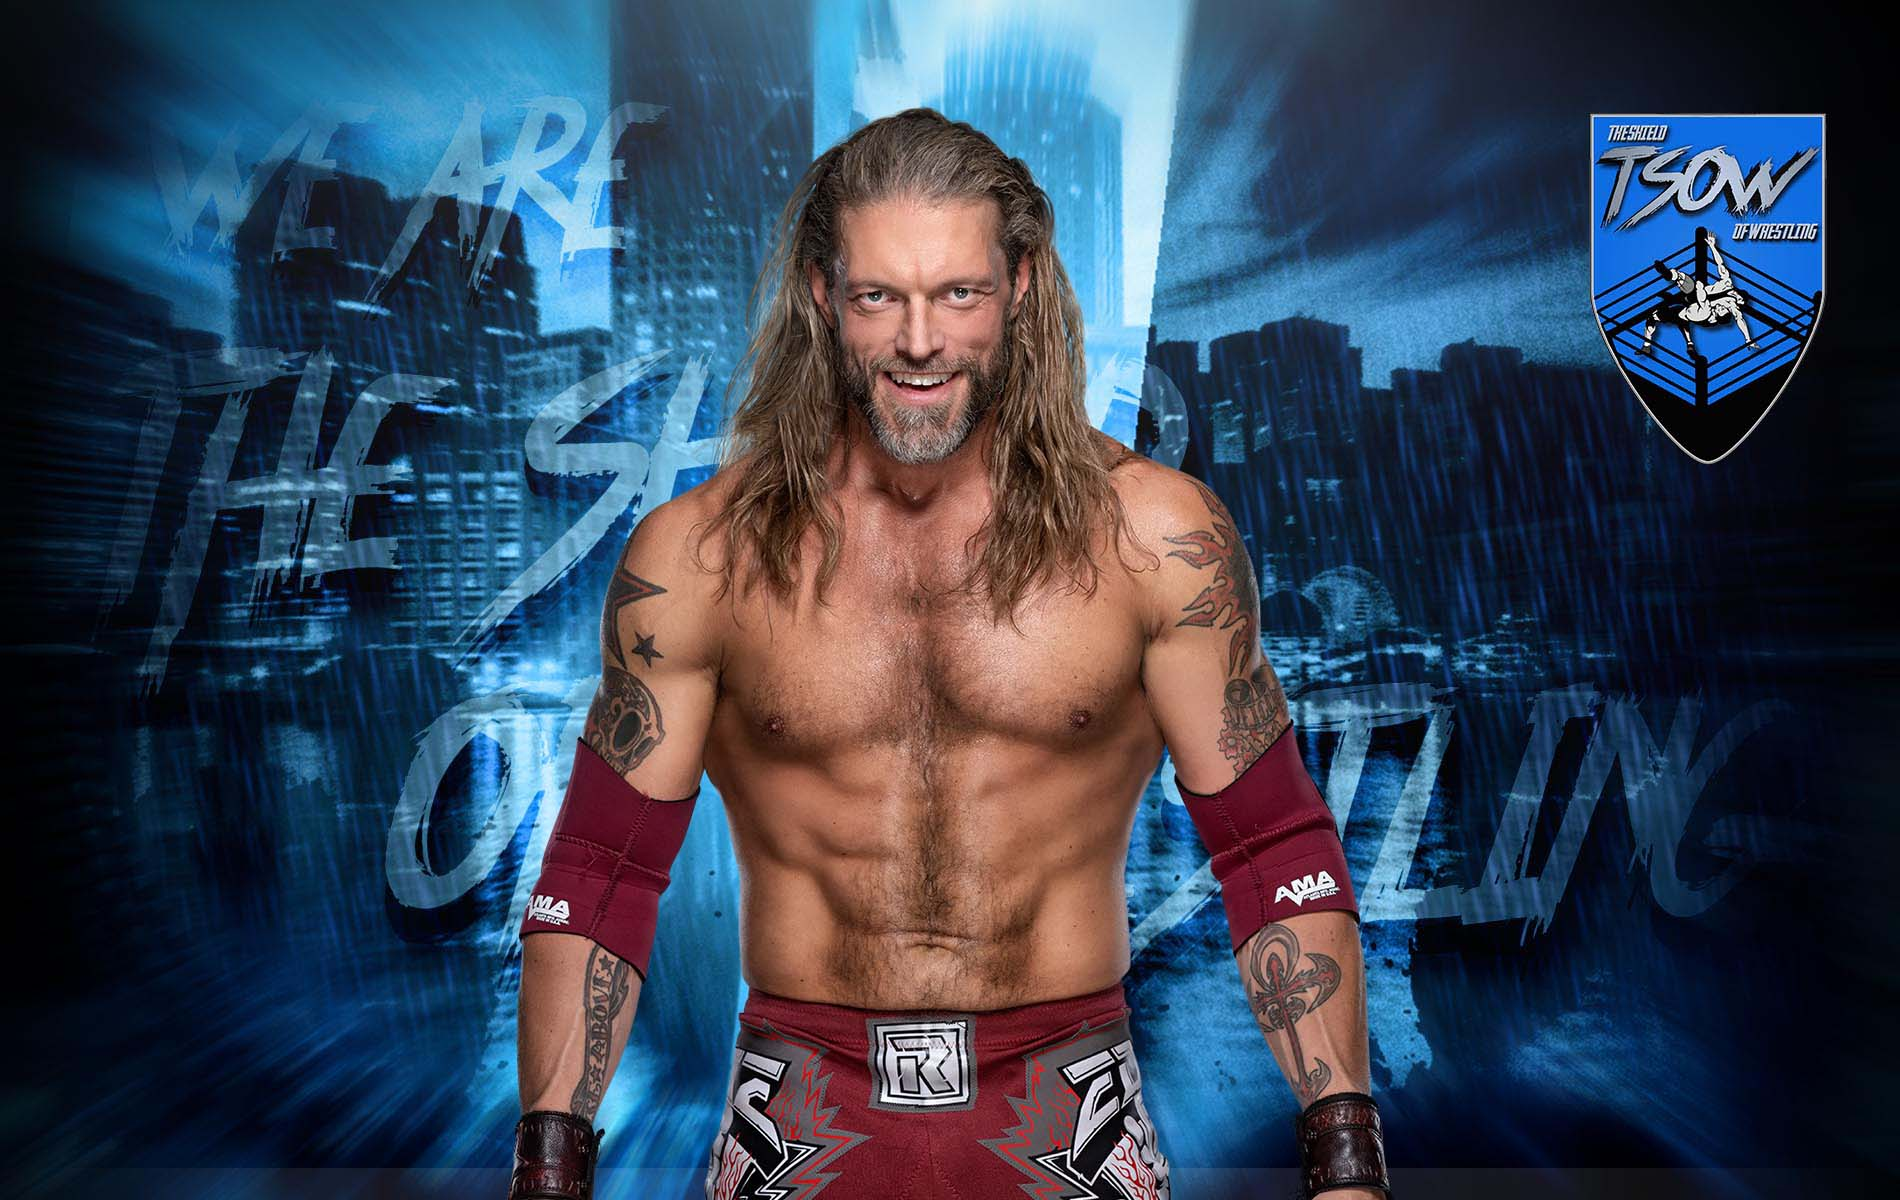 Edge racconta del match con Mick Foley di WrestleMania 22